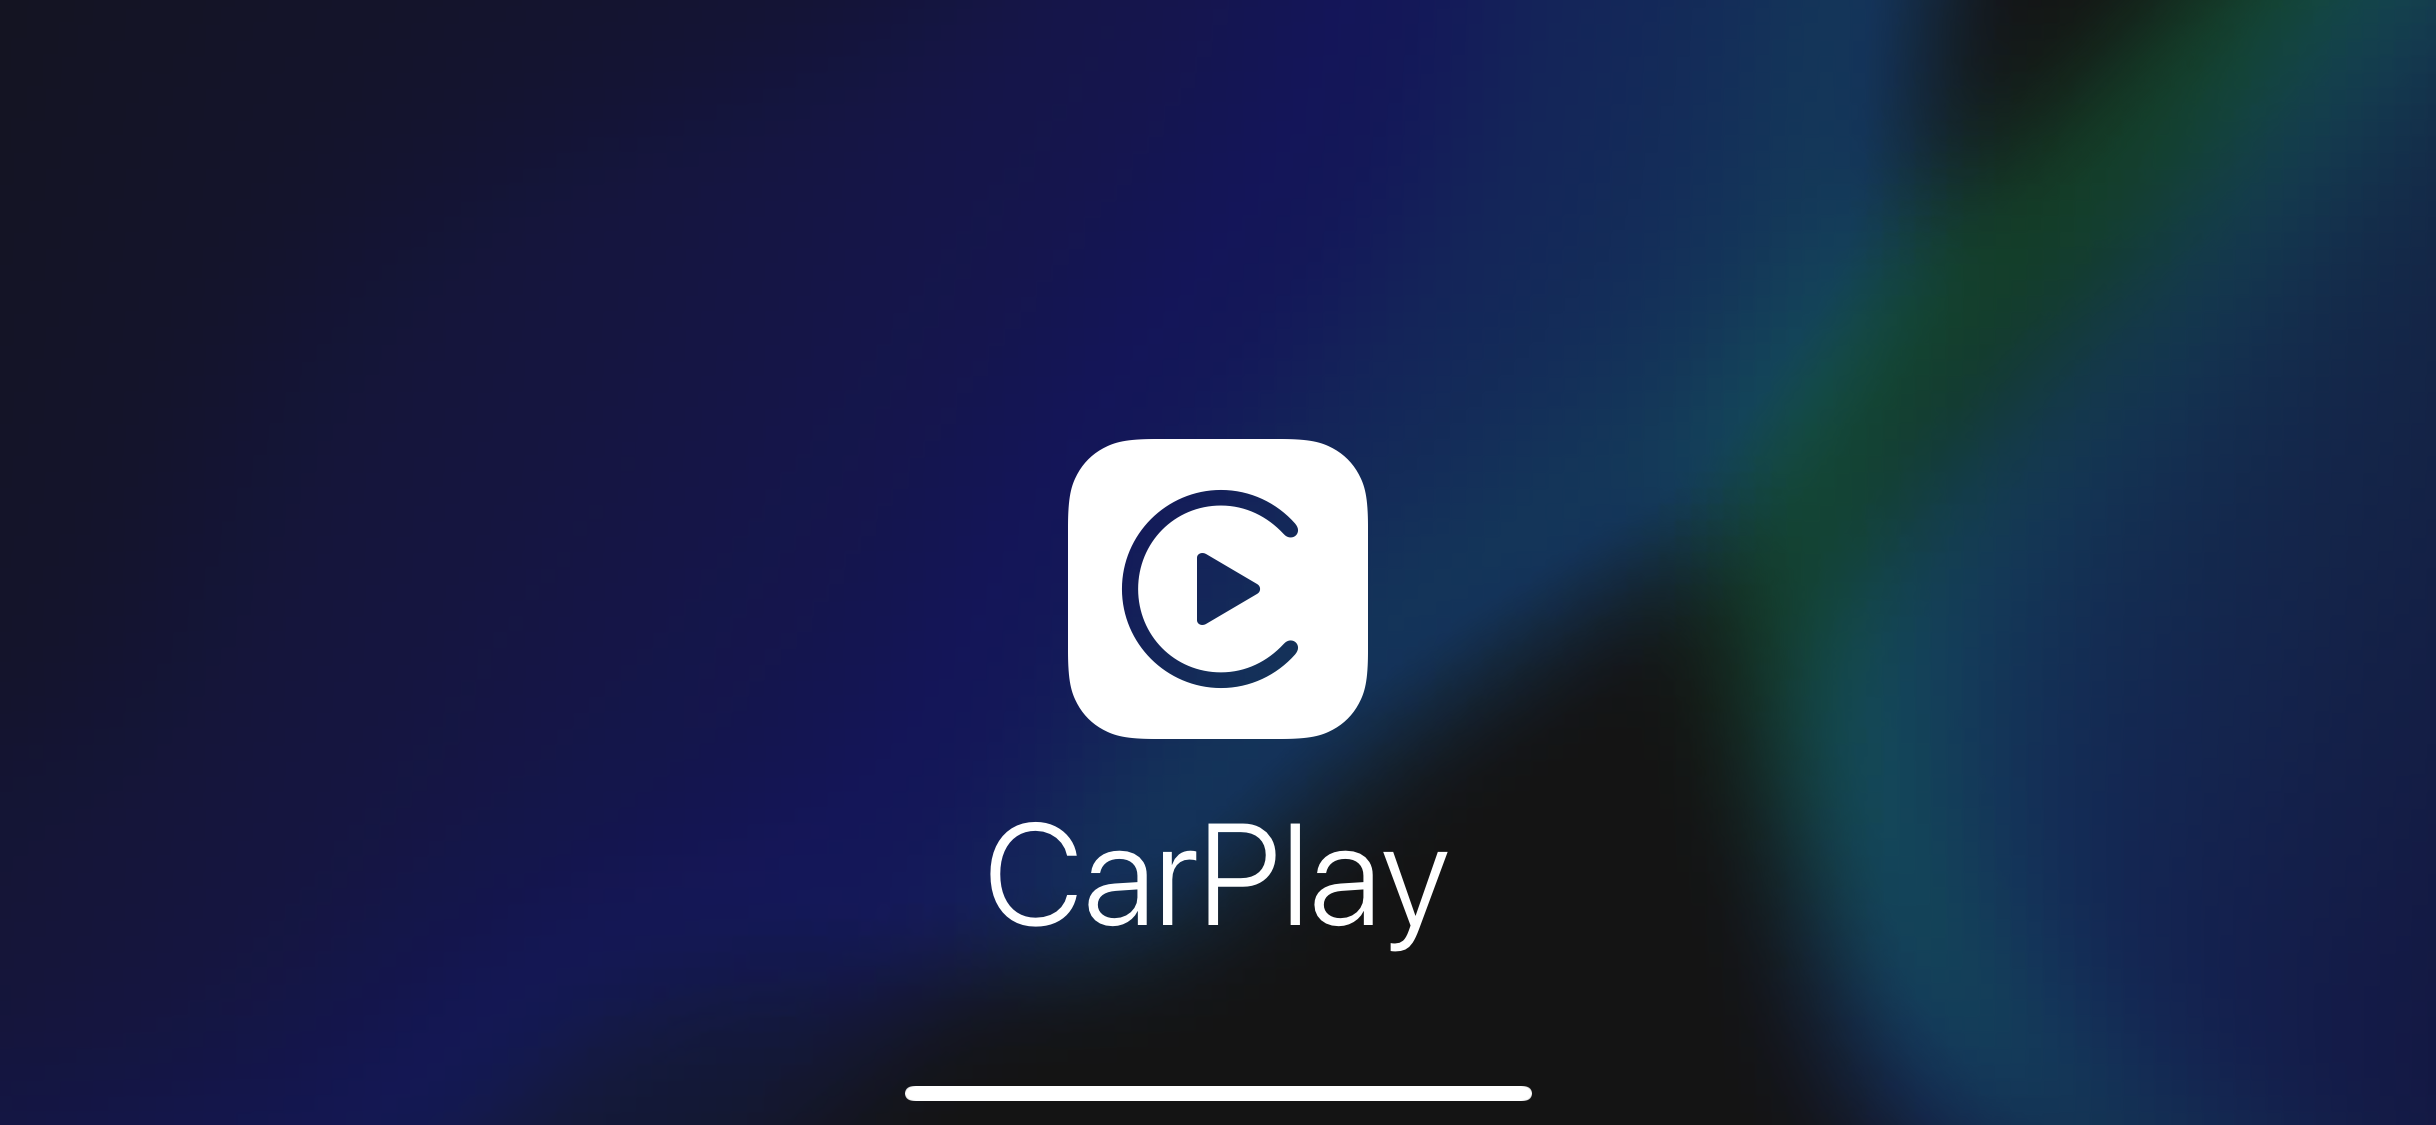 Handson with CarPlay in iOS 13: New apps, light mode, more